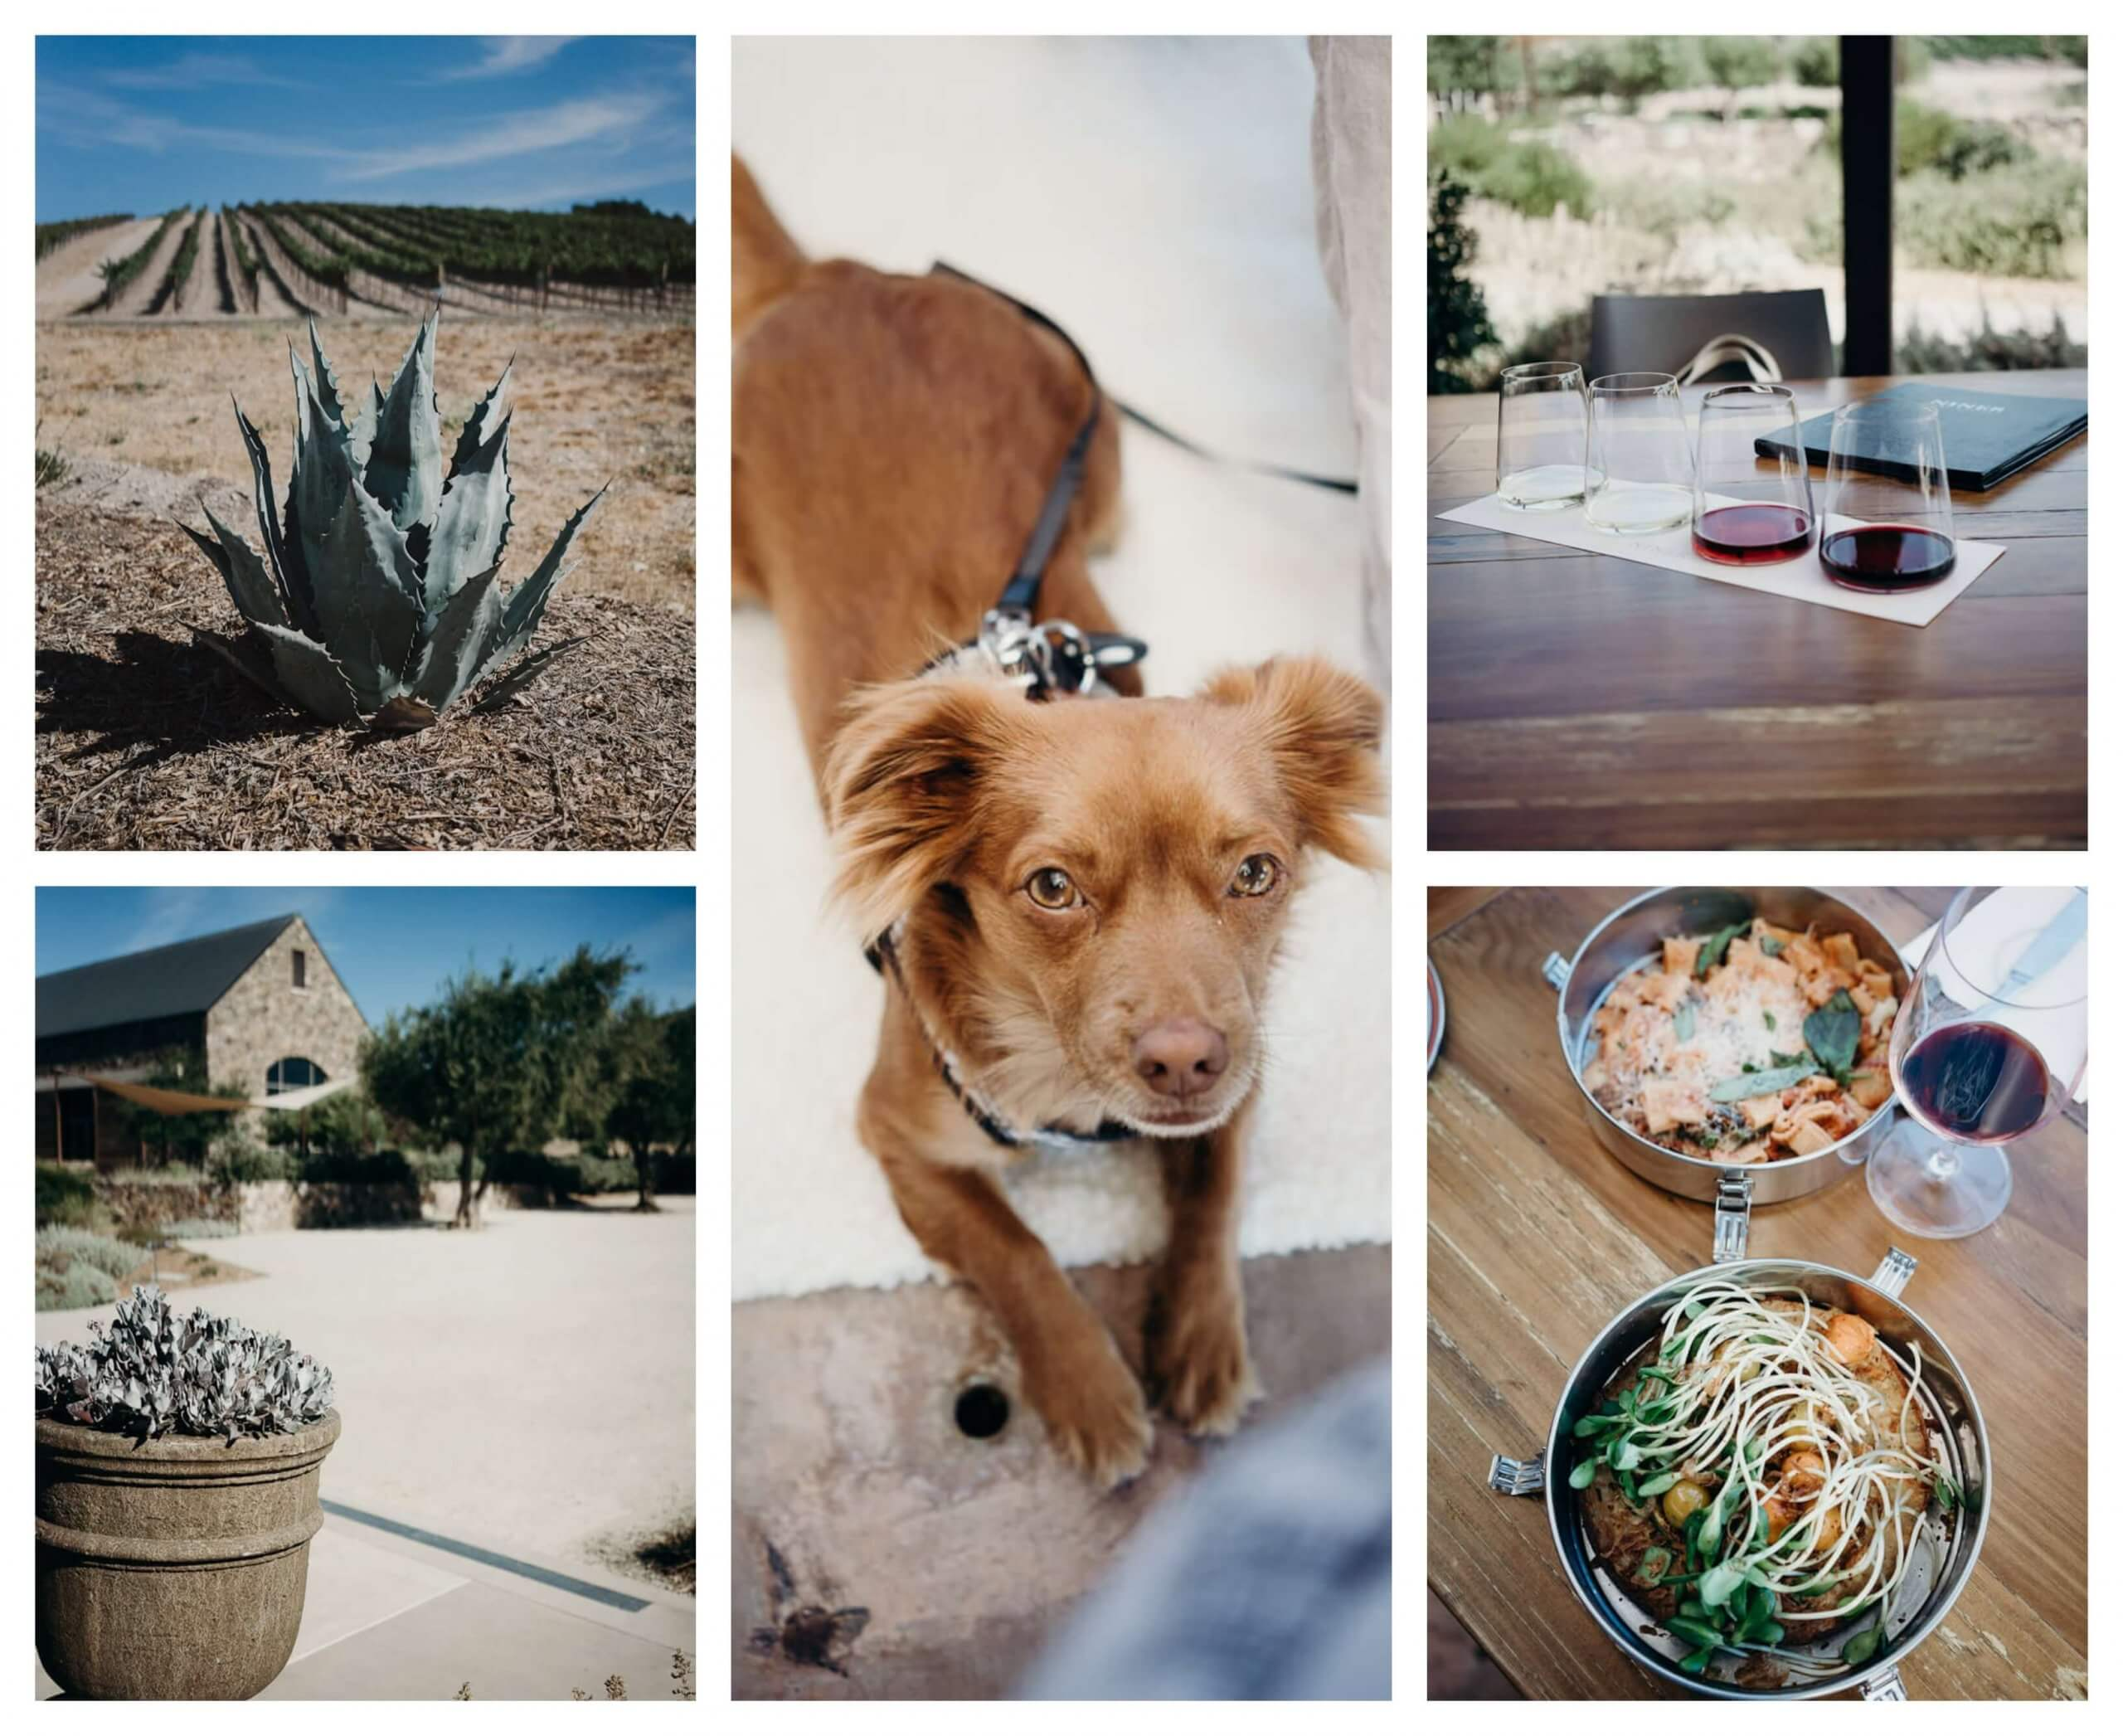 Niner Wine estates in paso Robles is a dog friendly winery